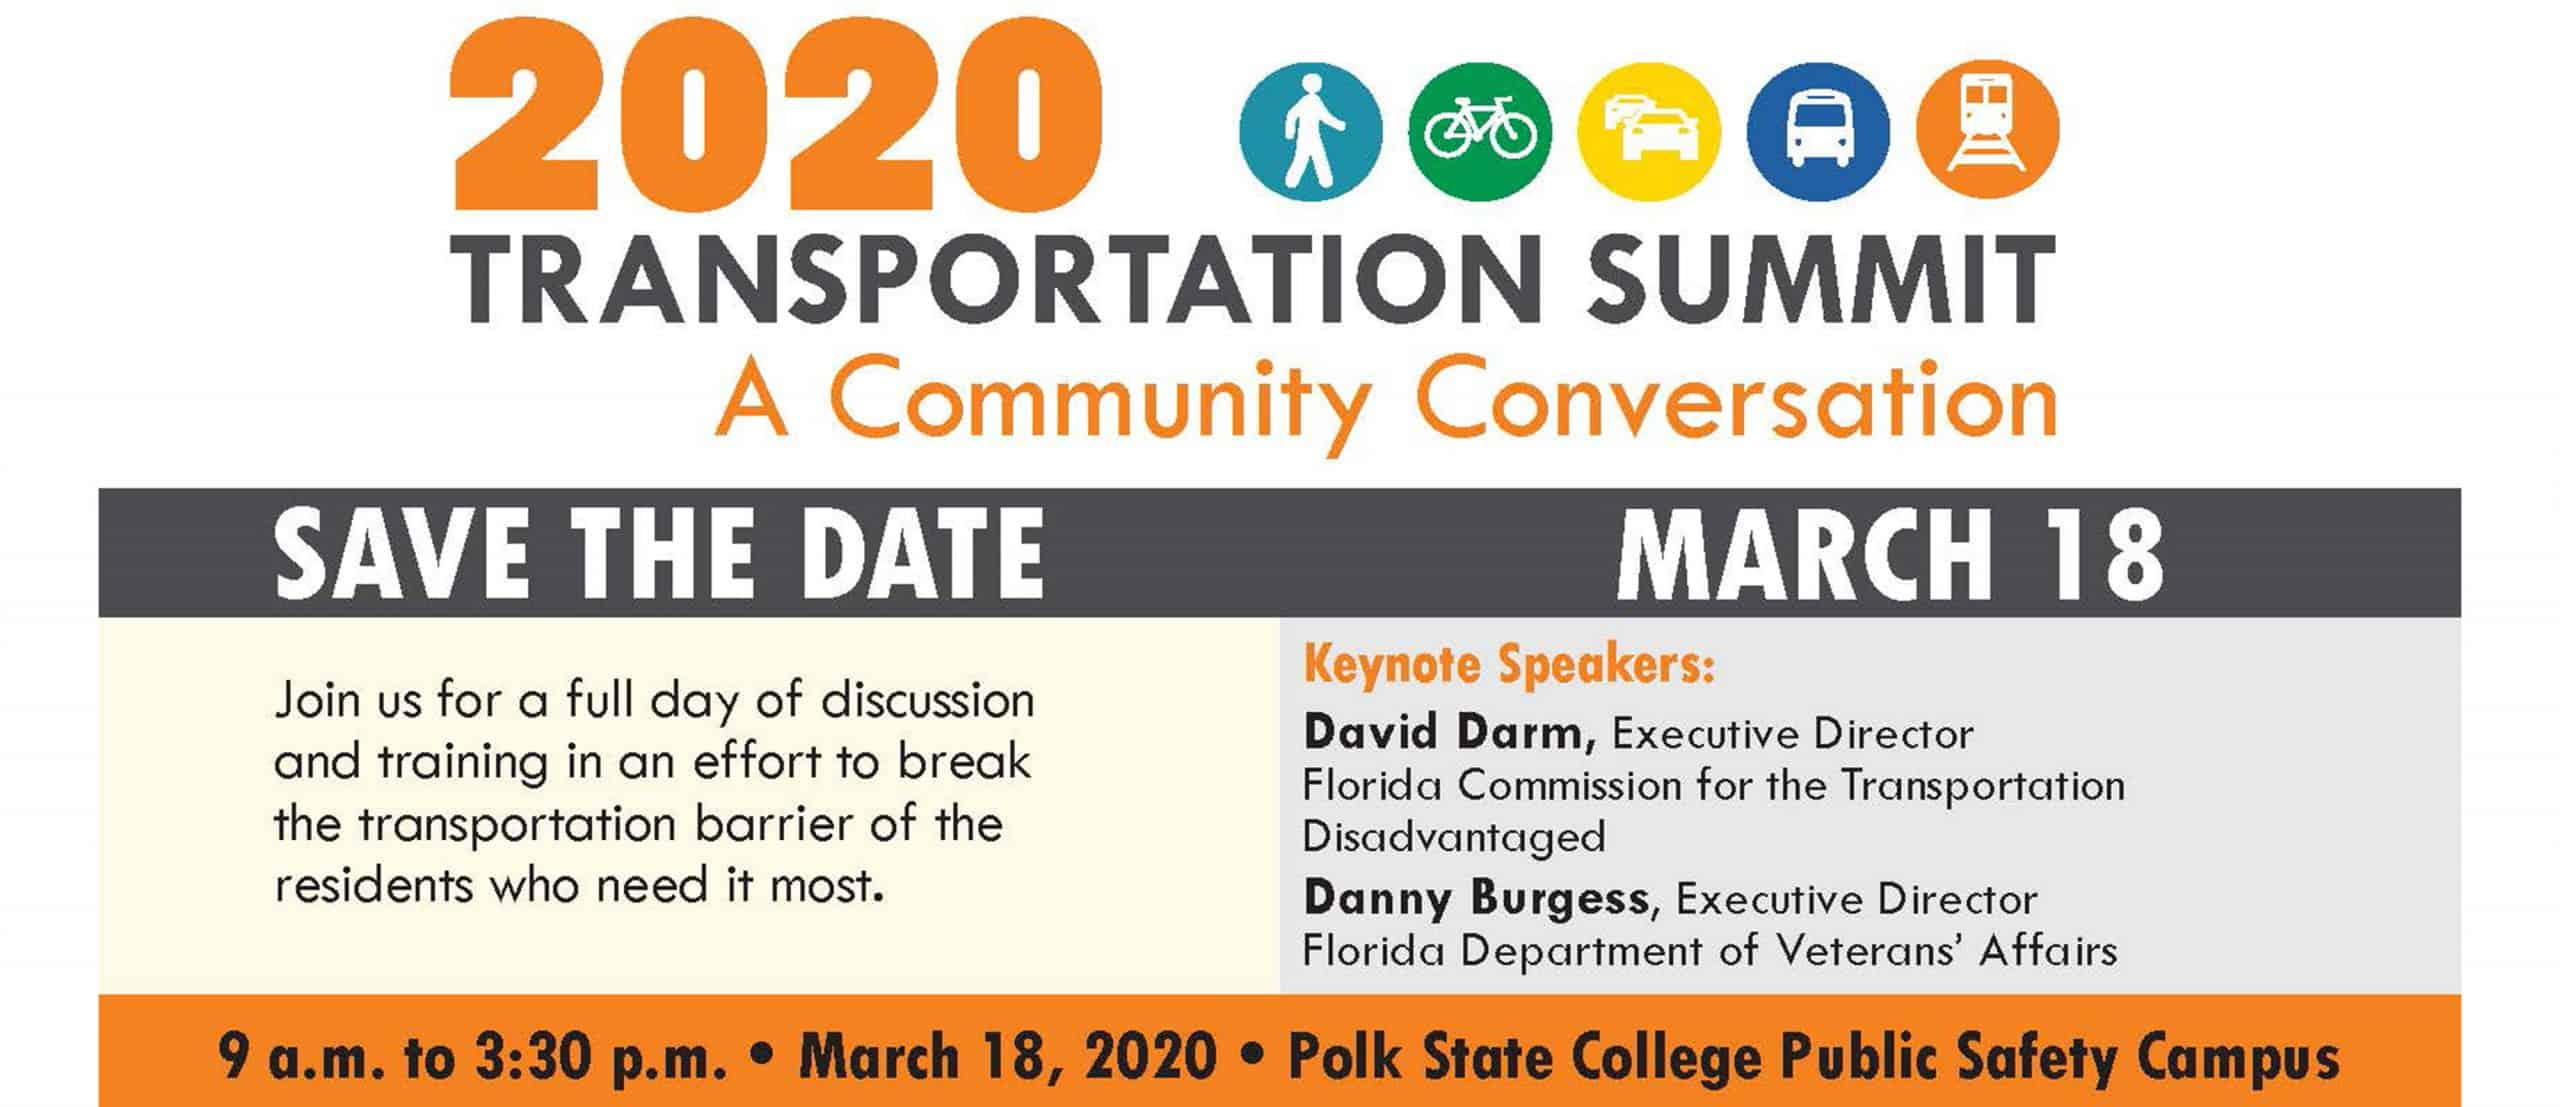 Transportation Summit Save The Date Slider